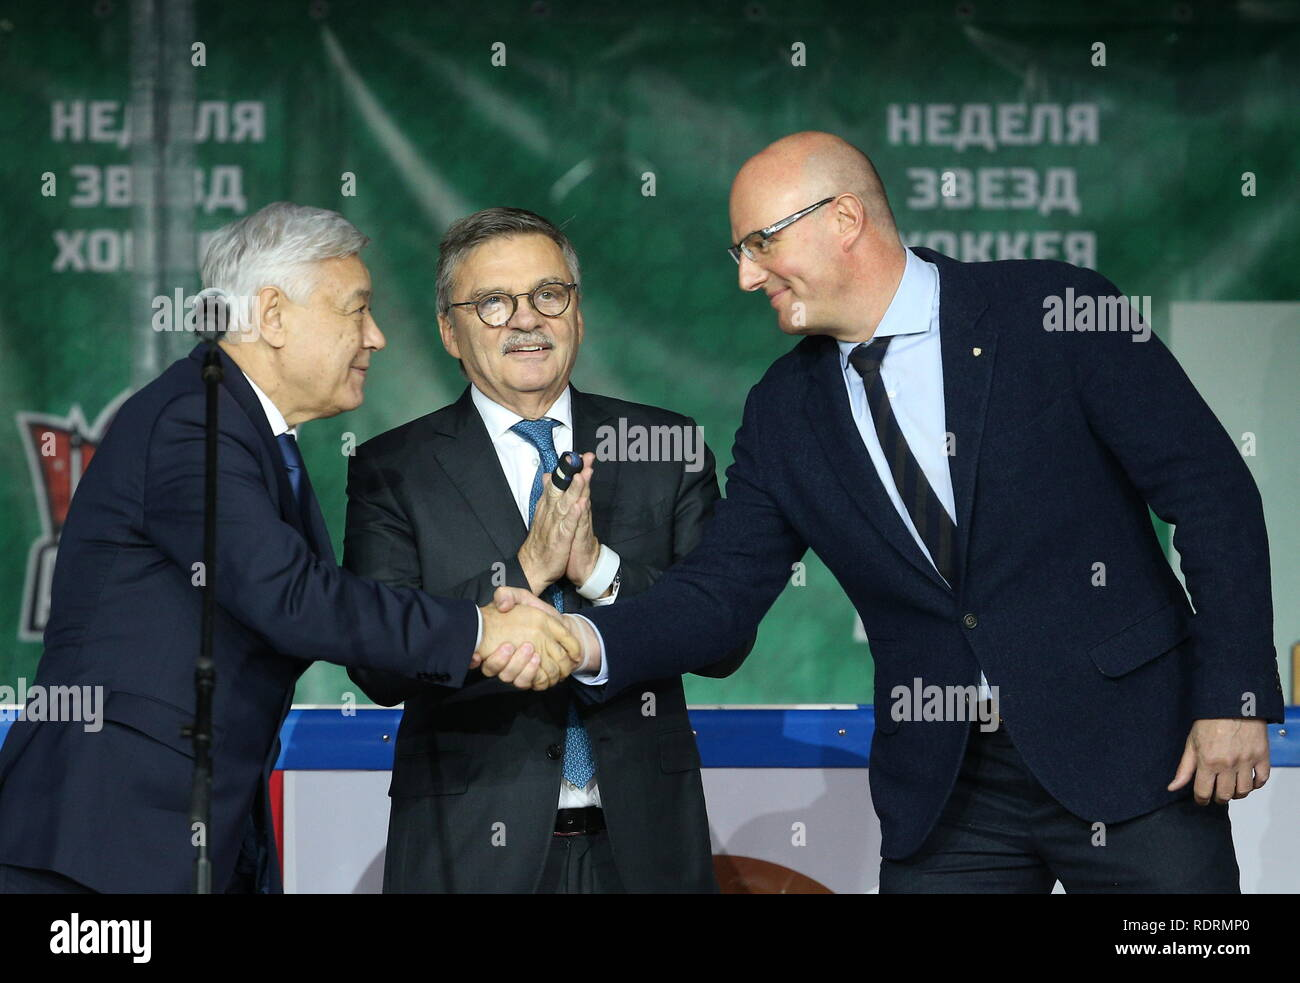 Kazan Russia January 19 2019 Rene Fasel C President Of The